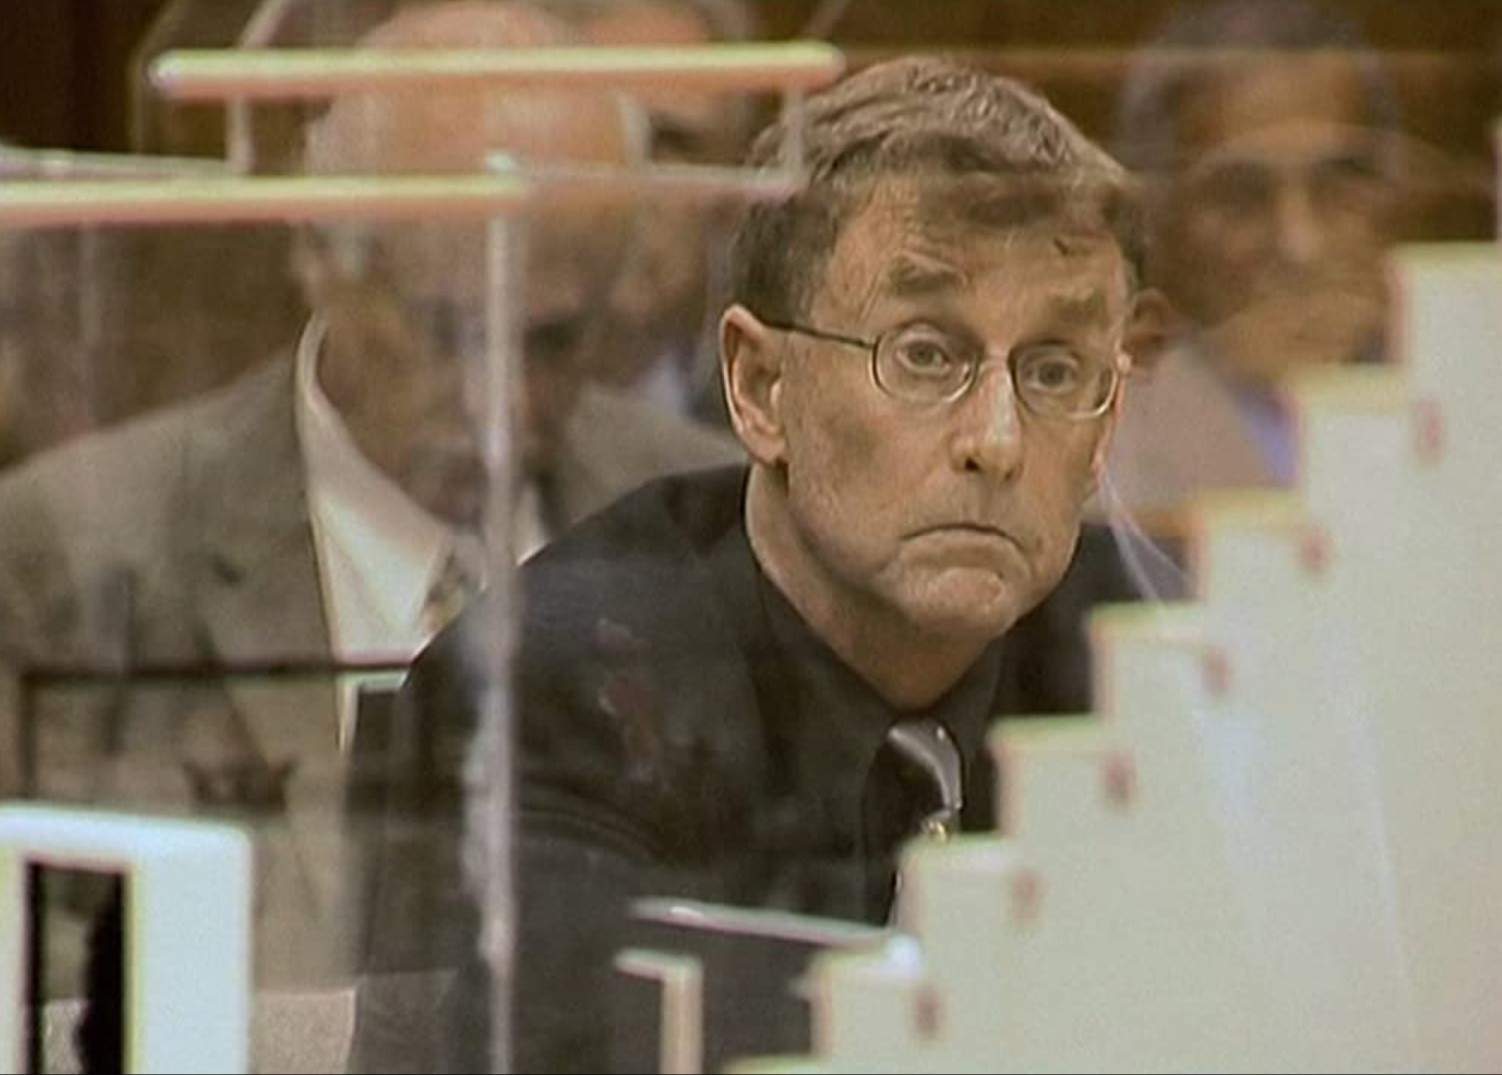 Character on trial from 'The Staircase'